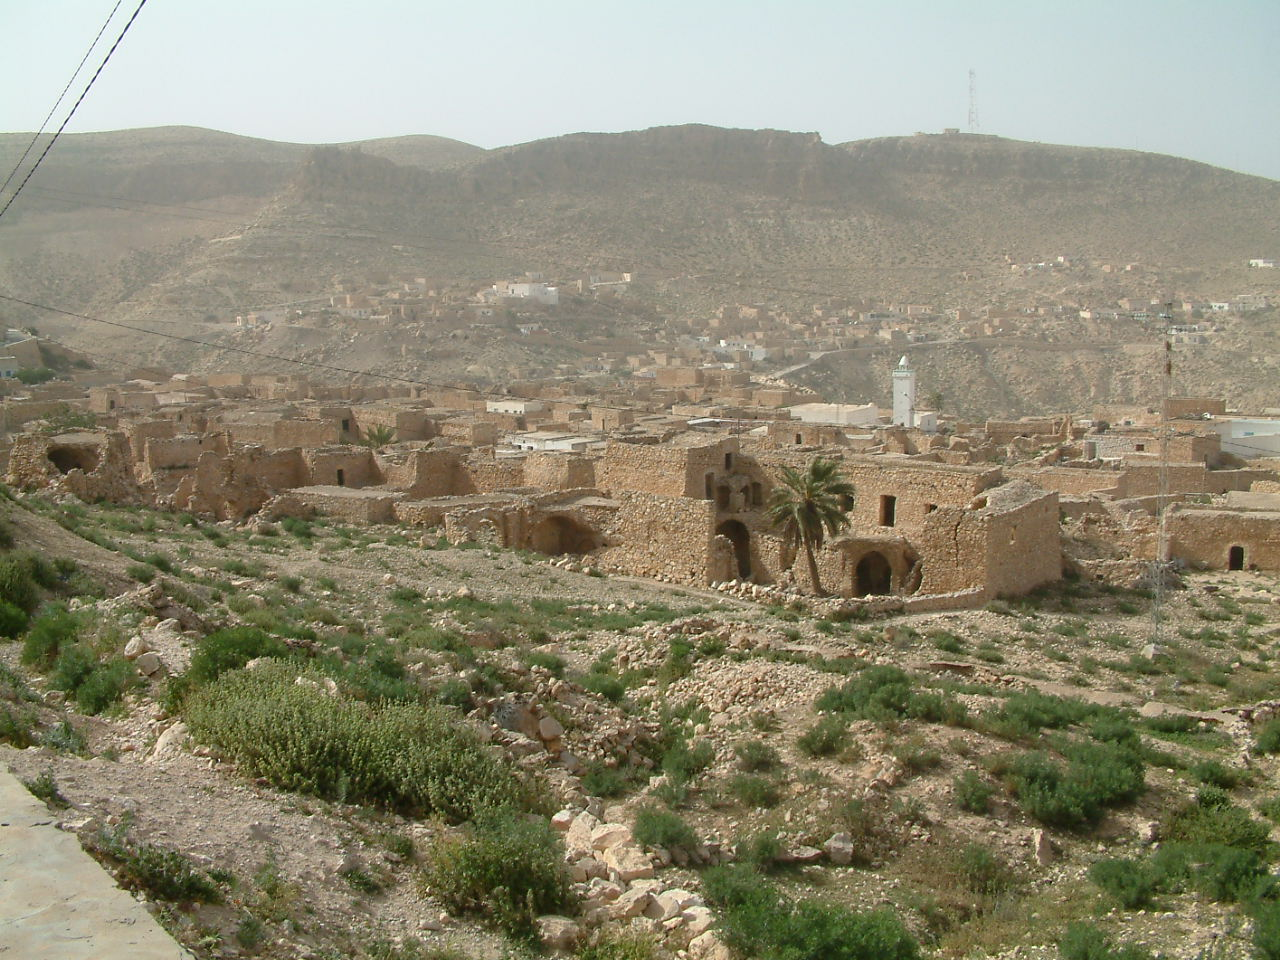 27 april 2008 Zammour – Matmata